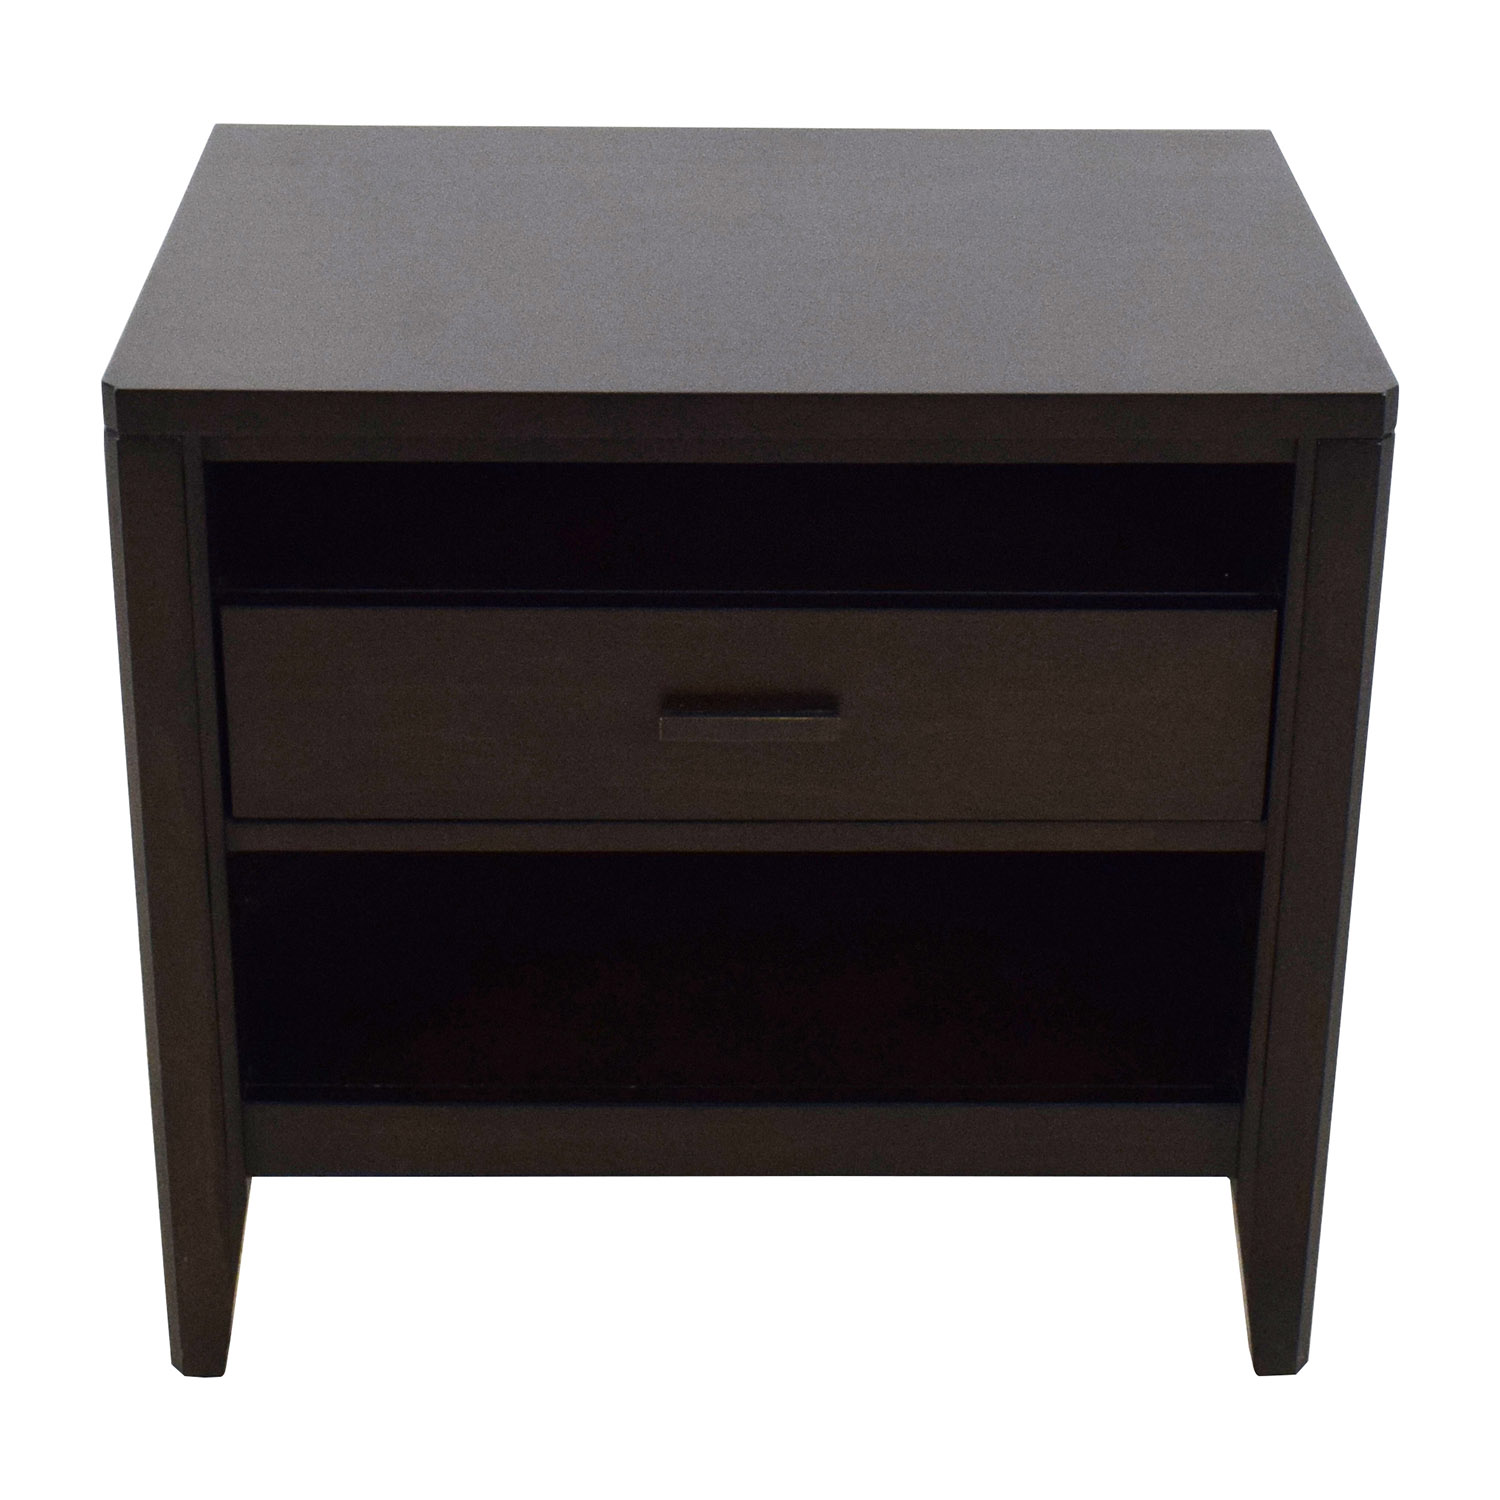 OFF Crate and Barrel Crate & Barrel Wood Nightstand Tables